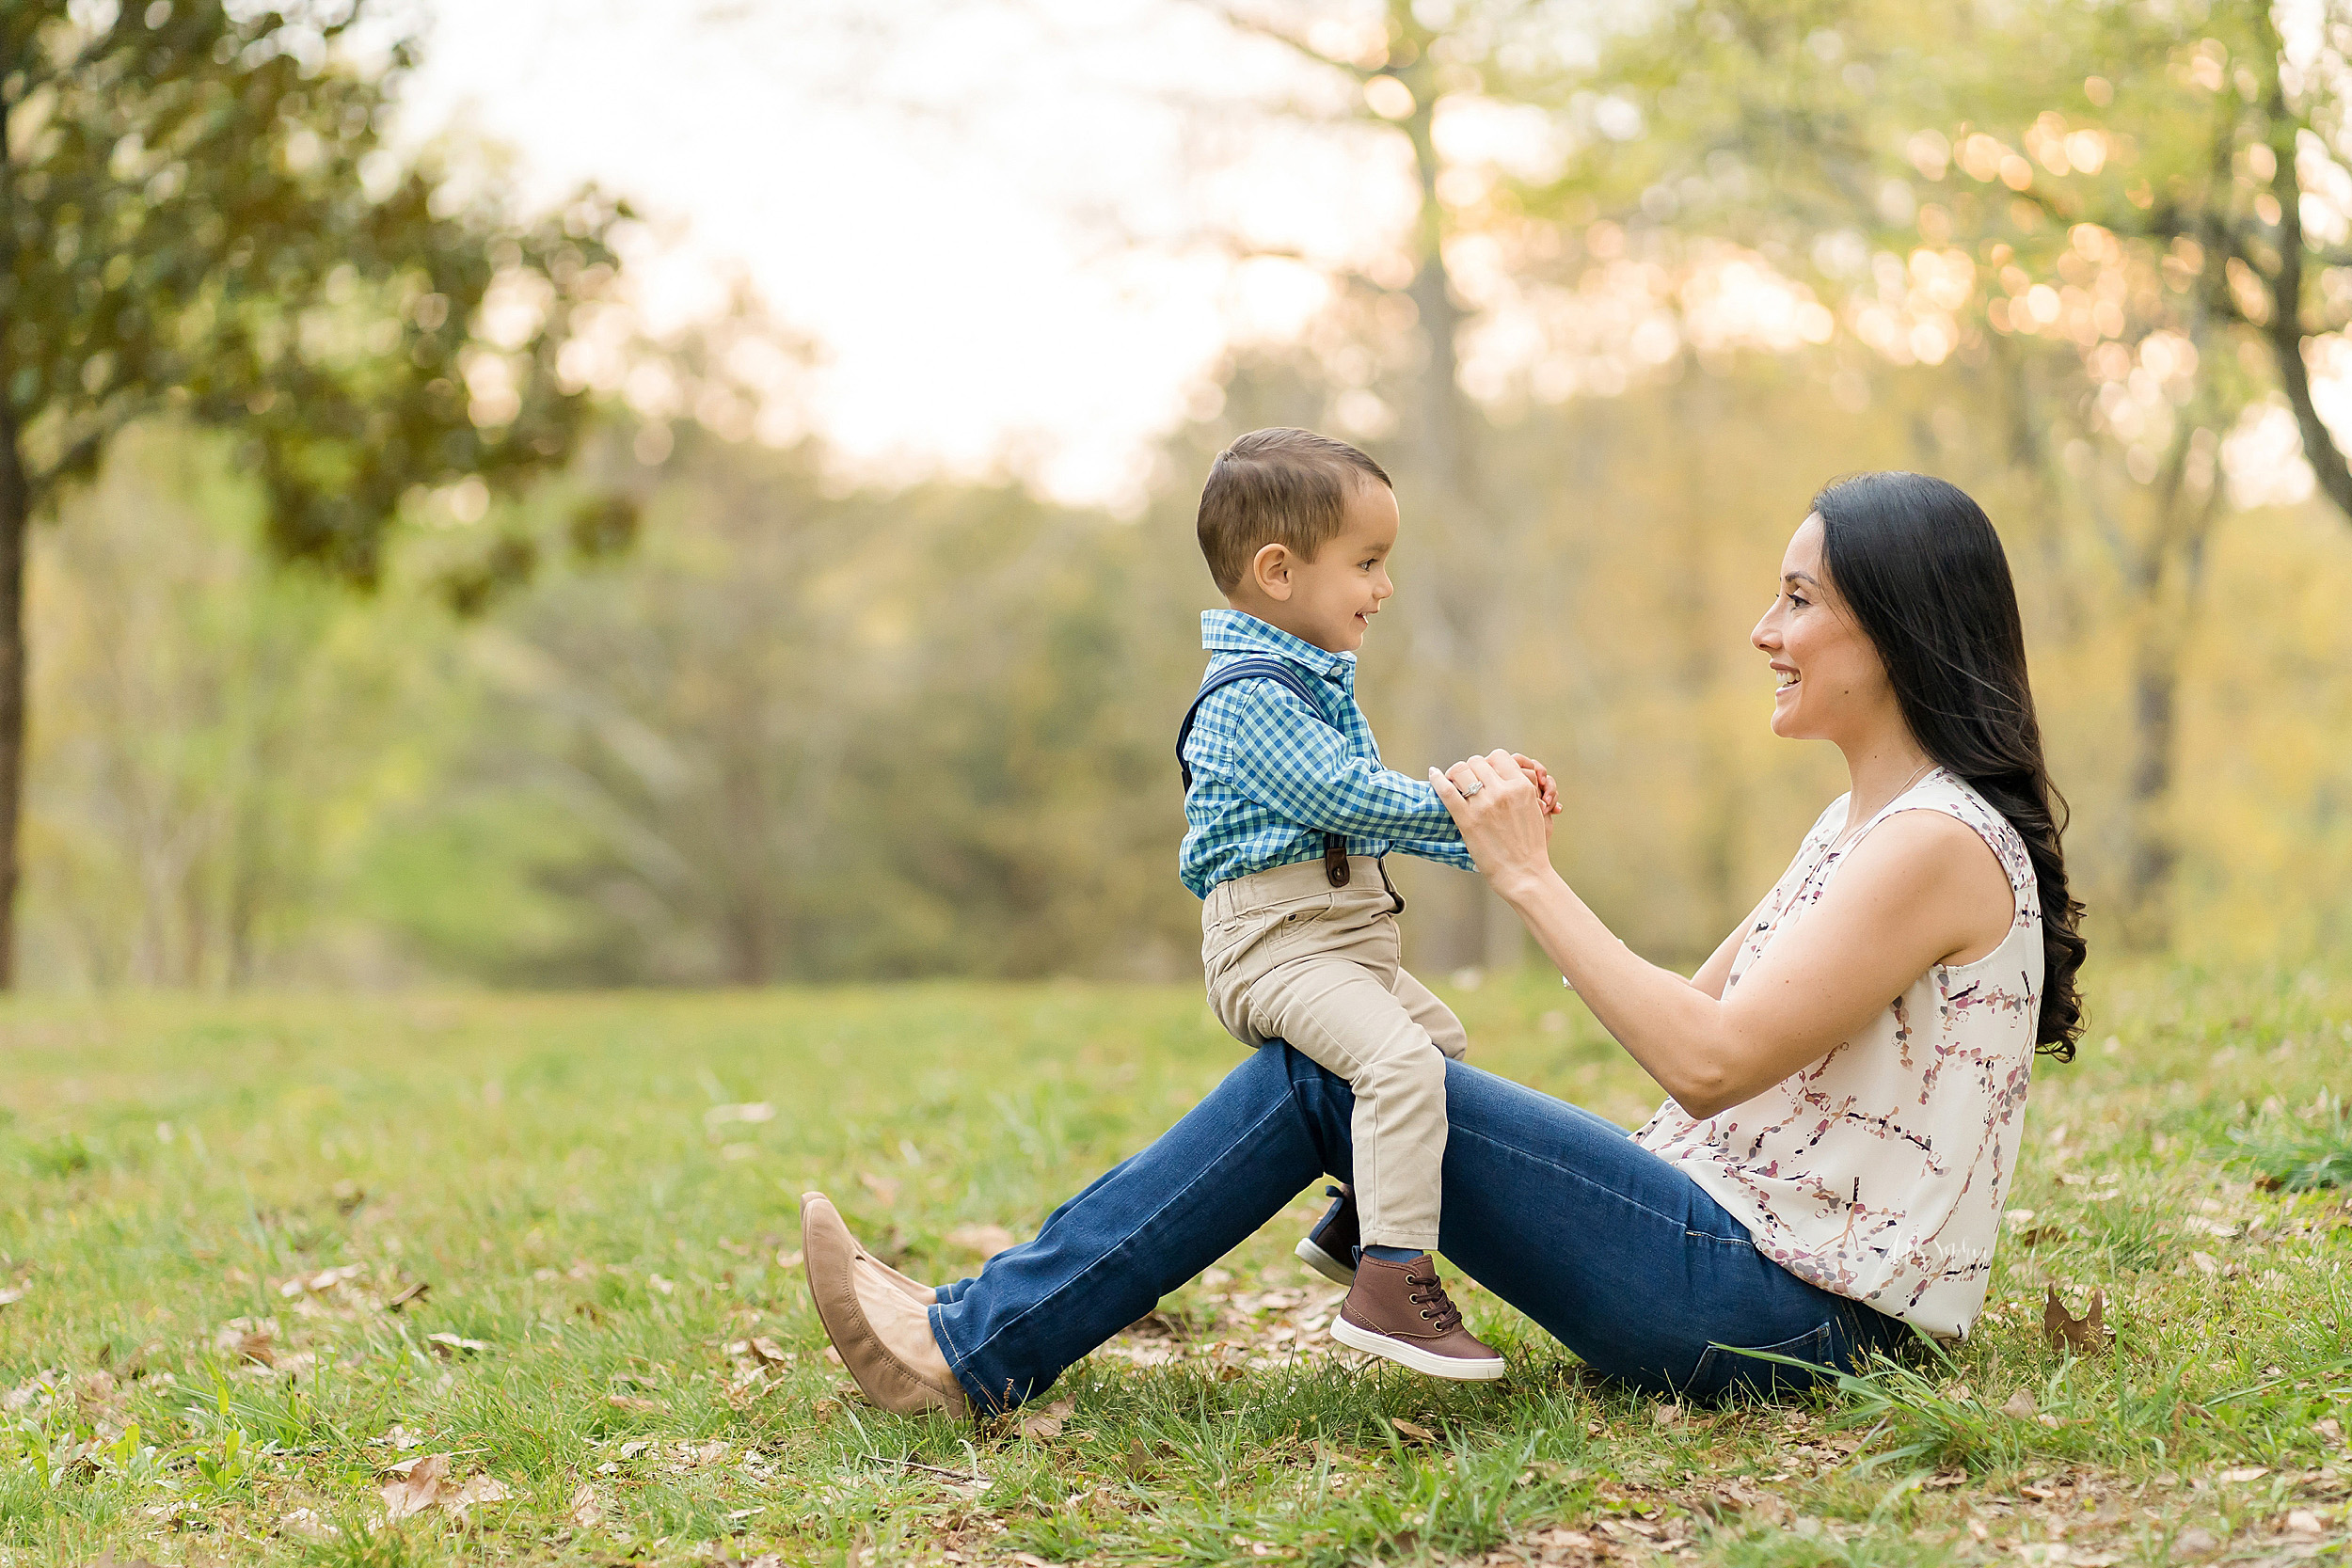 Profile image of a happy two year old caucasian boy and his mom smiling at one another in a park at sunset. Mom is sitting on the grass with her knees bent. Her two year old son is straddling her knees and holding her hands.